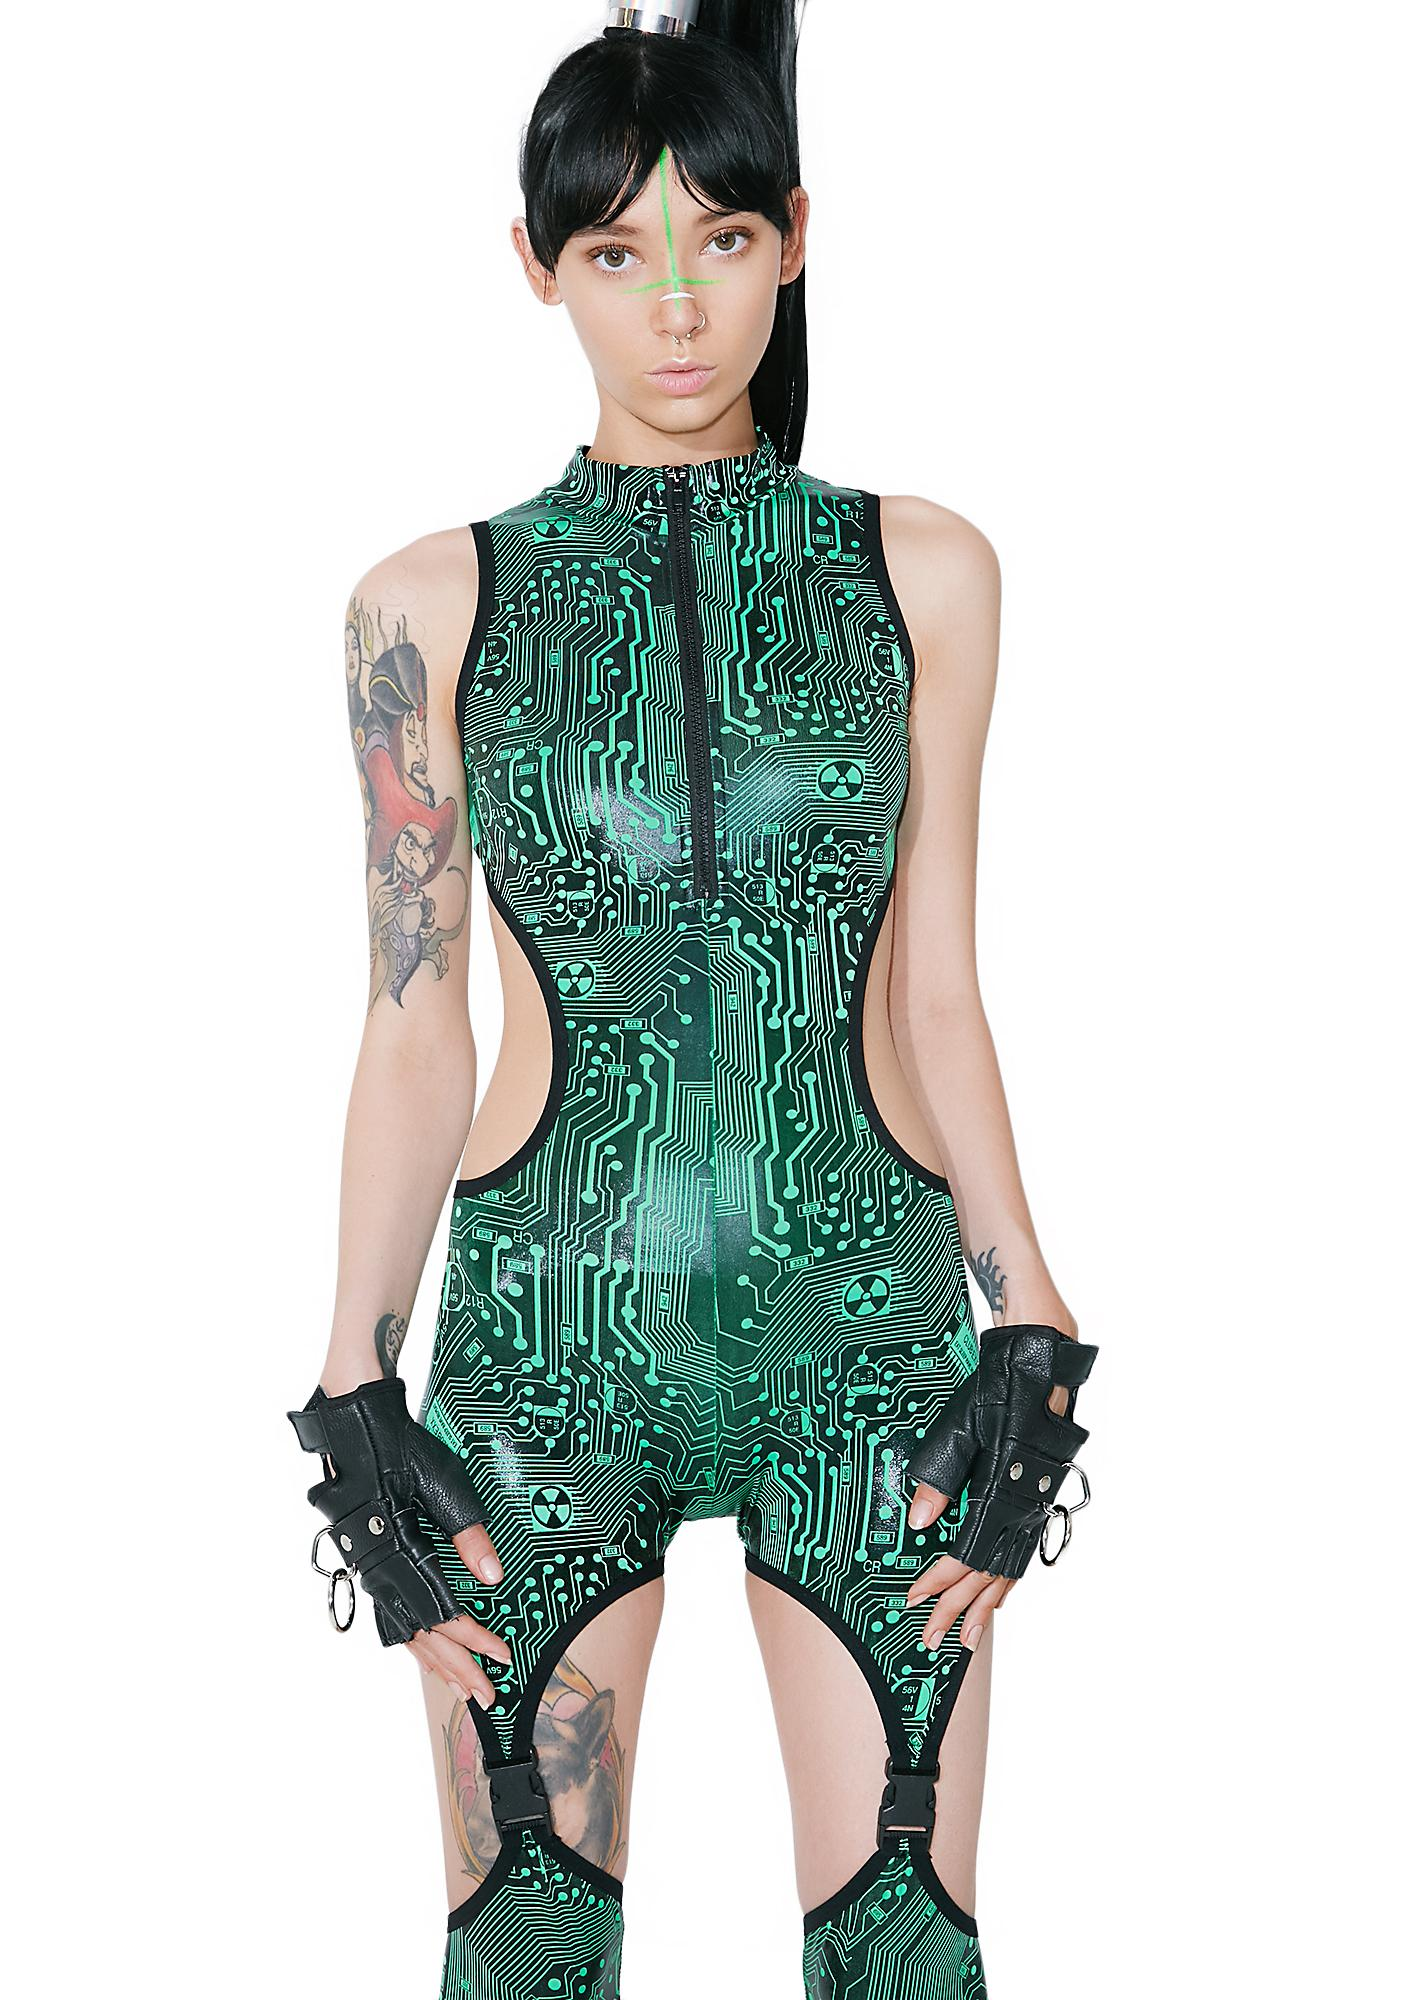 Club Exx Circuit Trippin' Cut-Out Catsuit